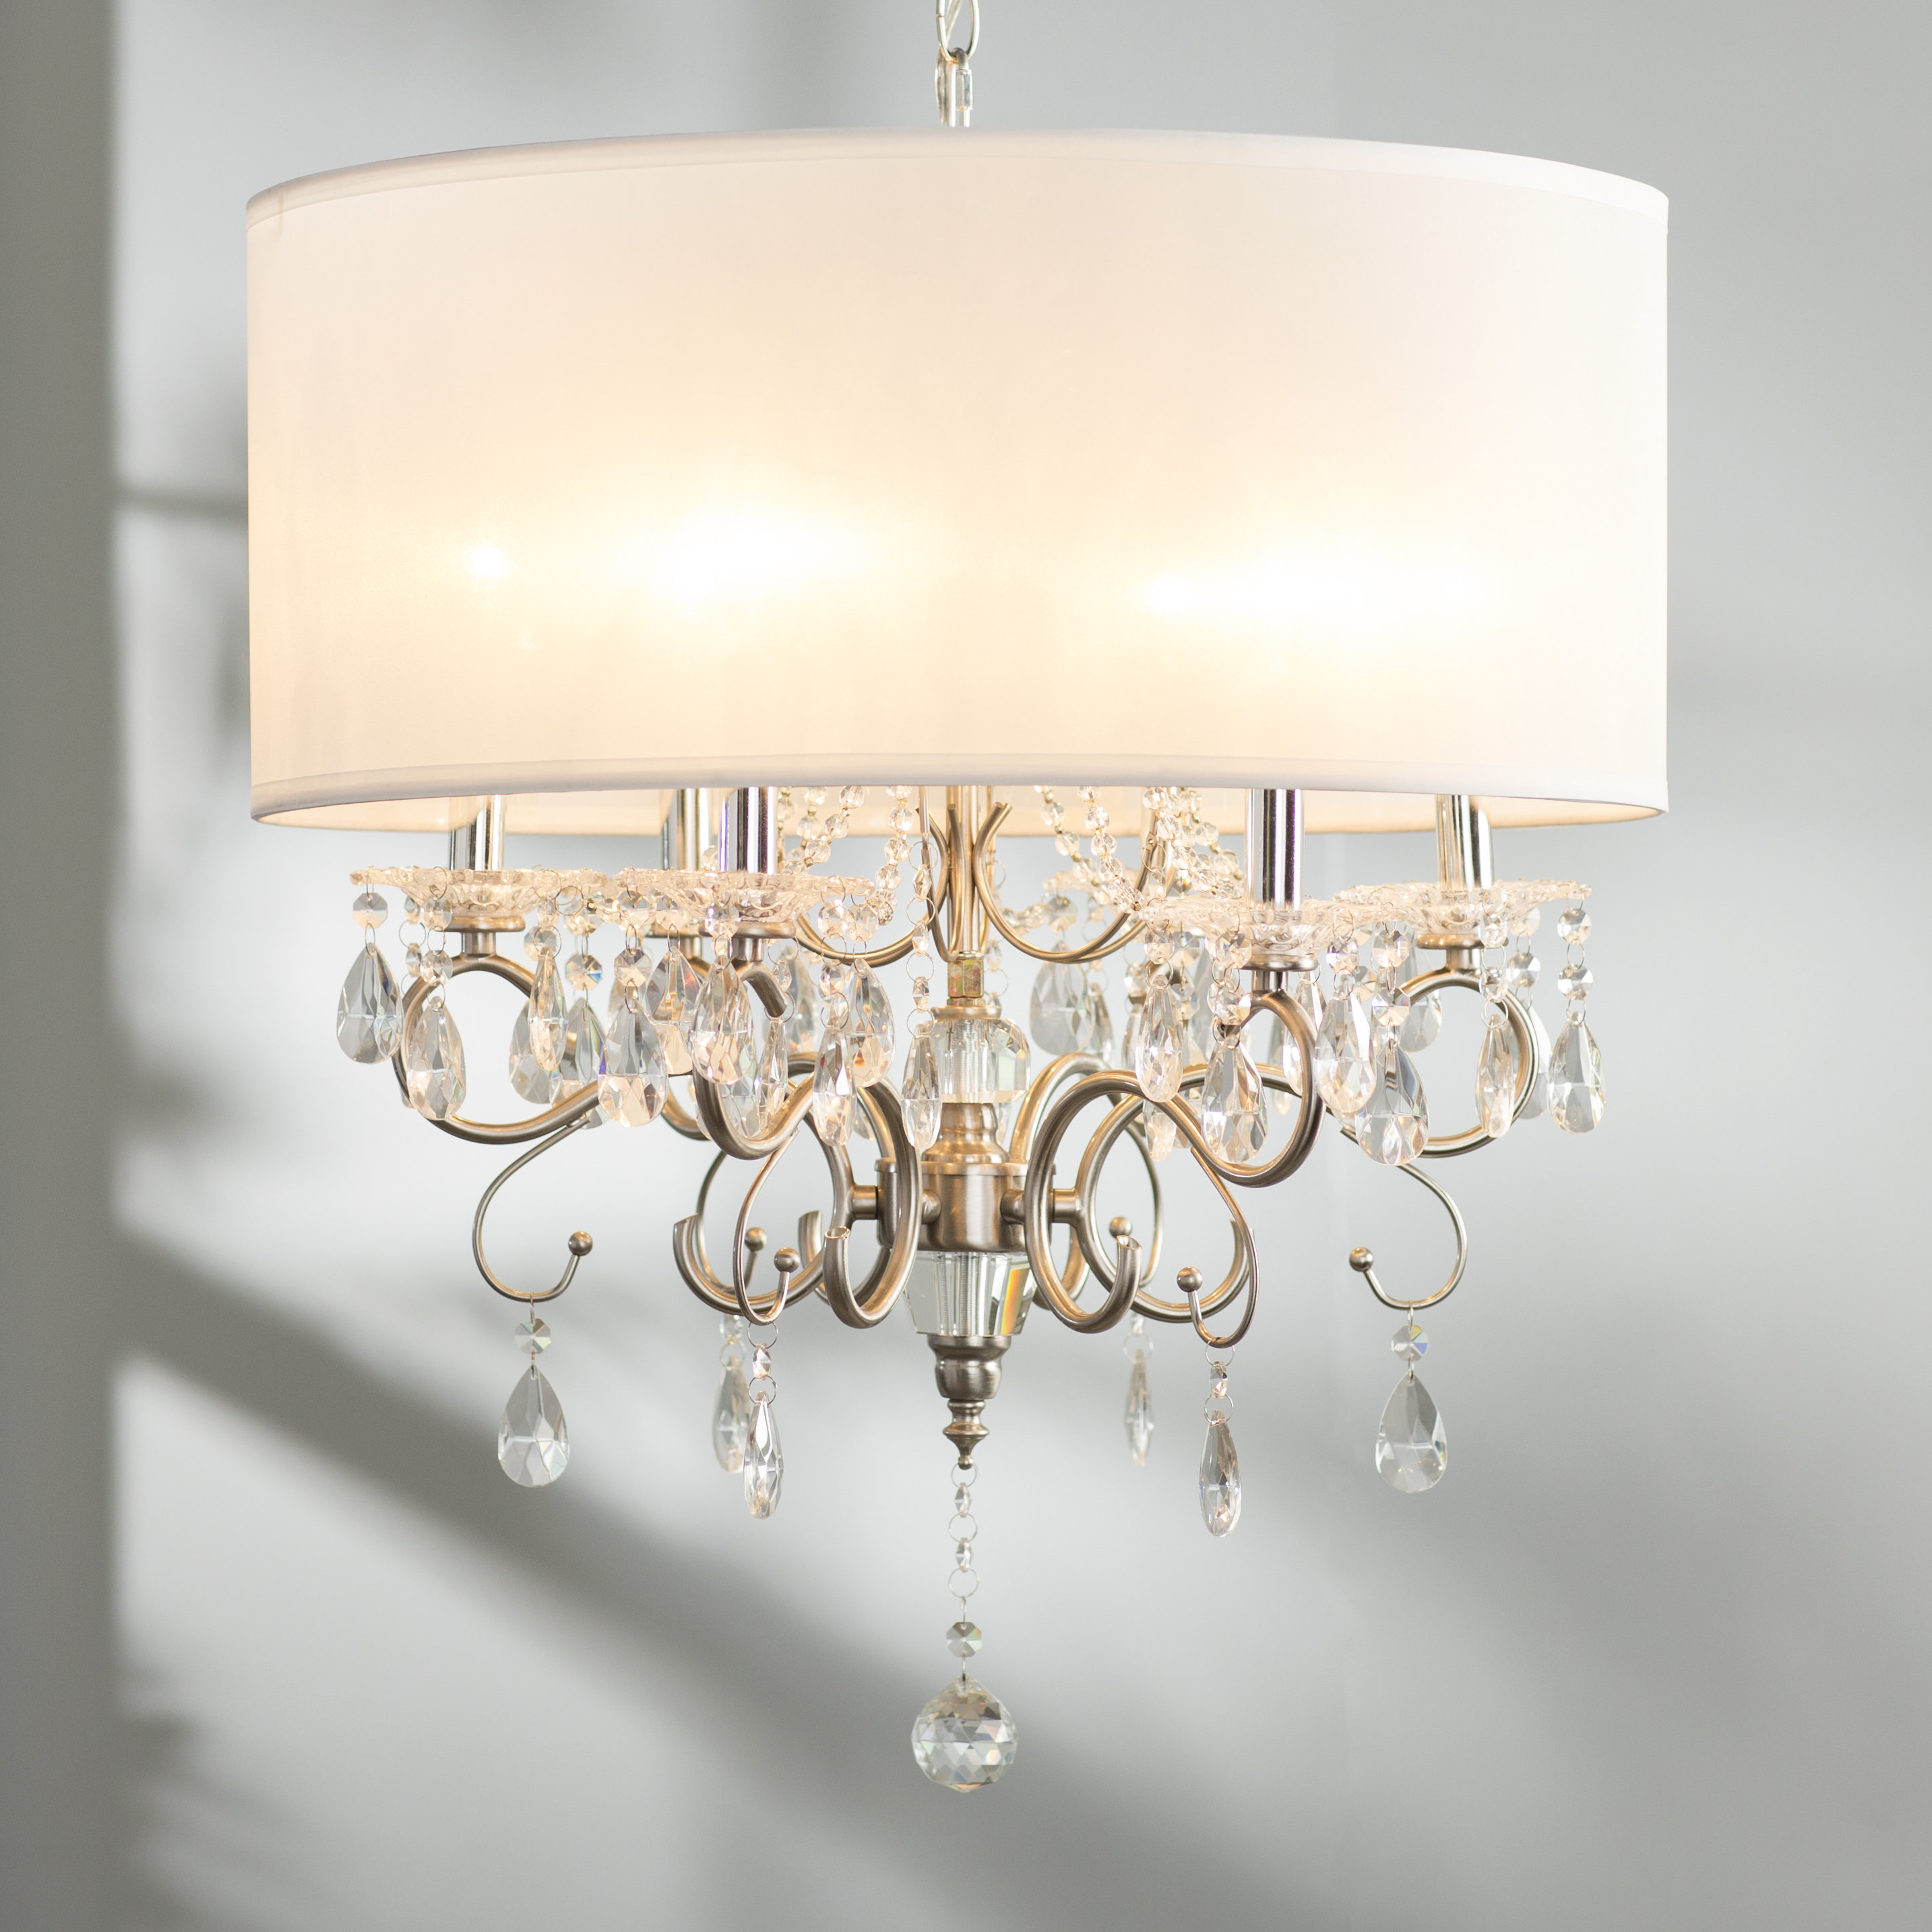 Honiton 6 Light Chandelier Intended For Popular Abel 5 Light Drum Chandeliers (View 21 of 25)